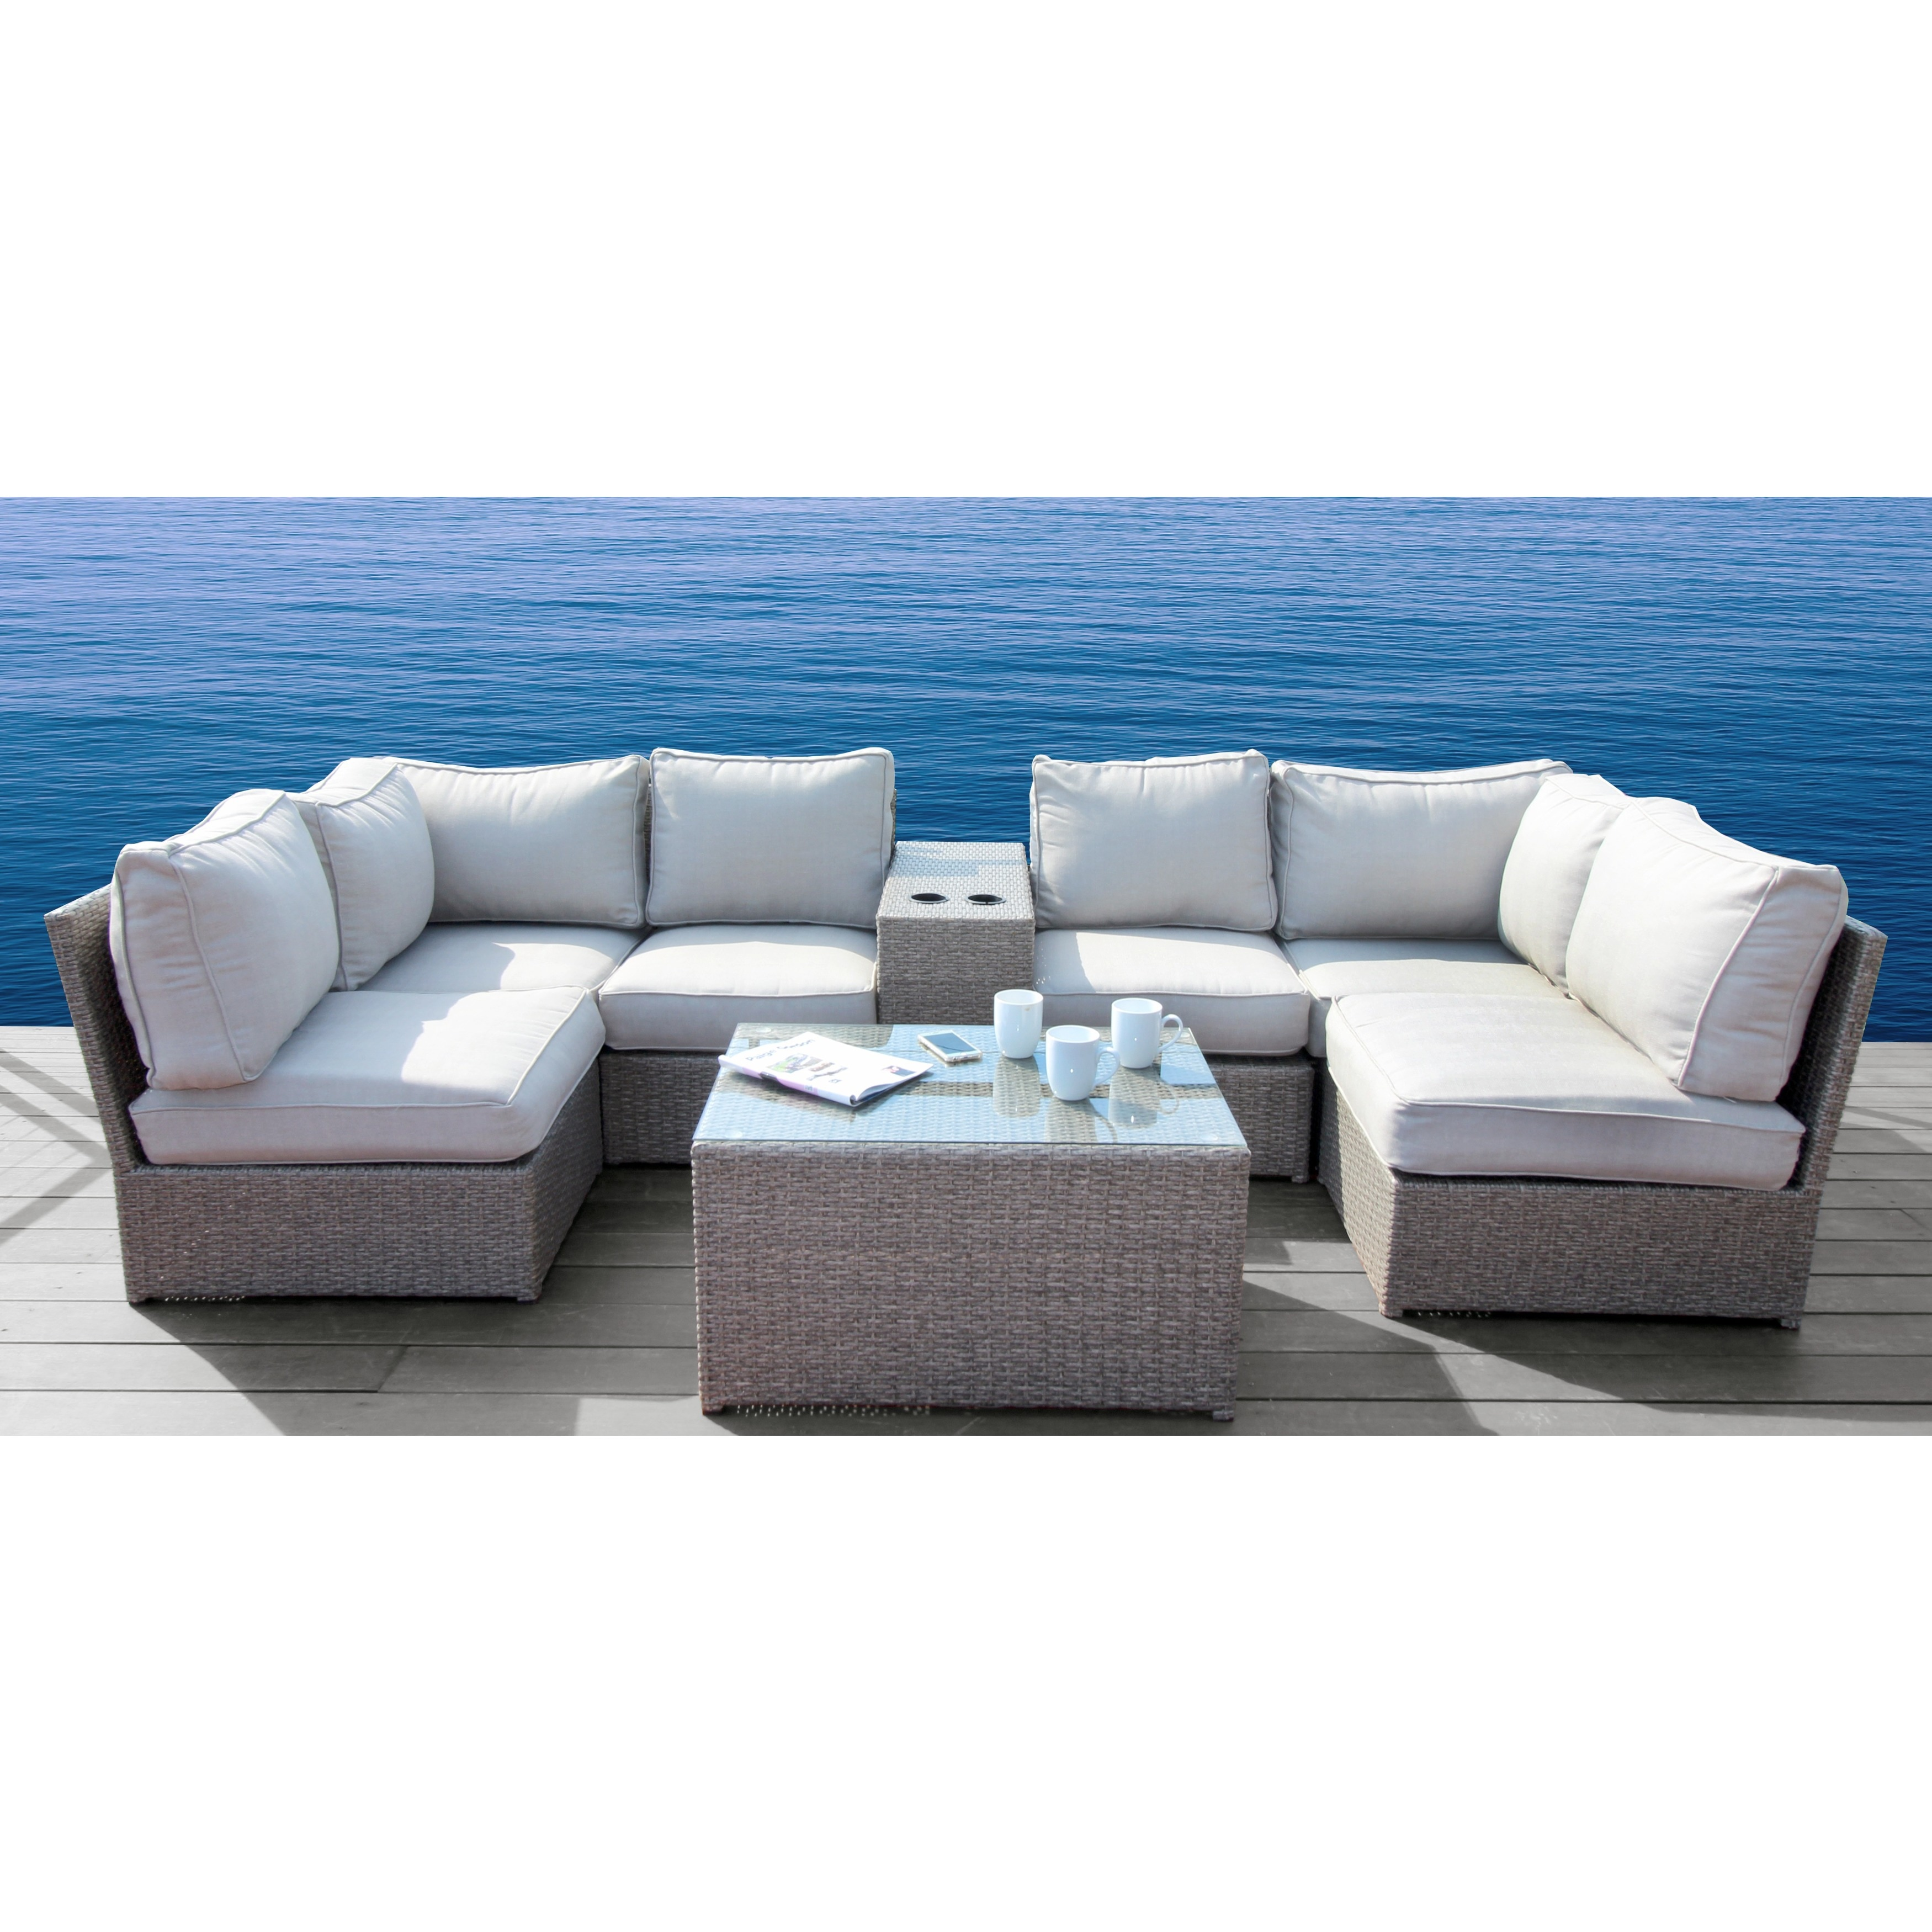 Stupendous Chelsea Grey Wicker 8 Piece Sectional Set By Living Source International Alphanode Cool Chair Designs And Ideas Alphanodeonline